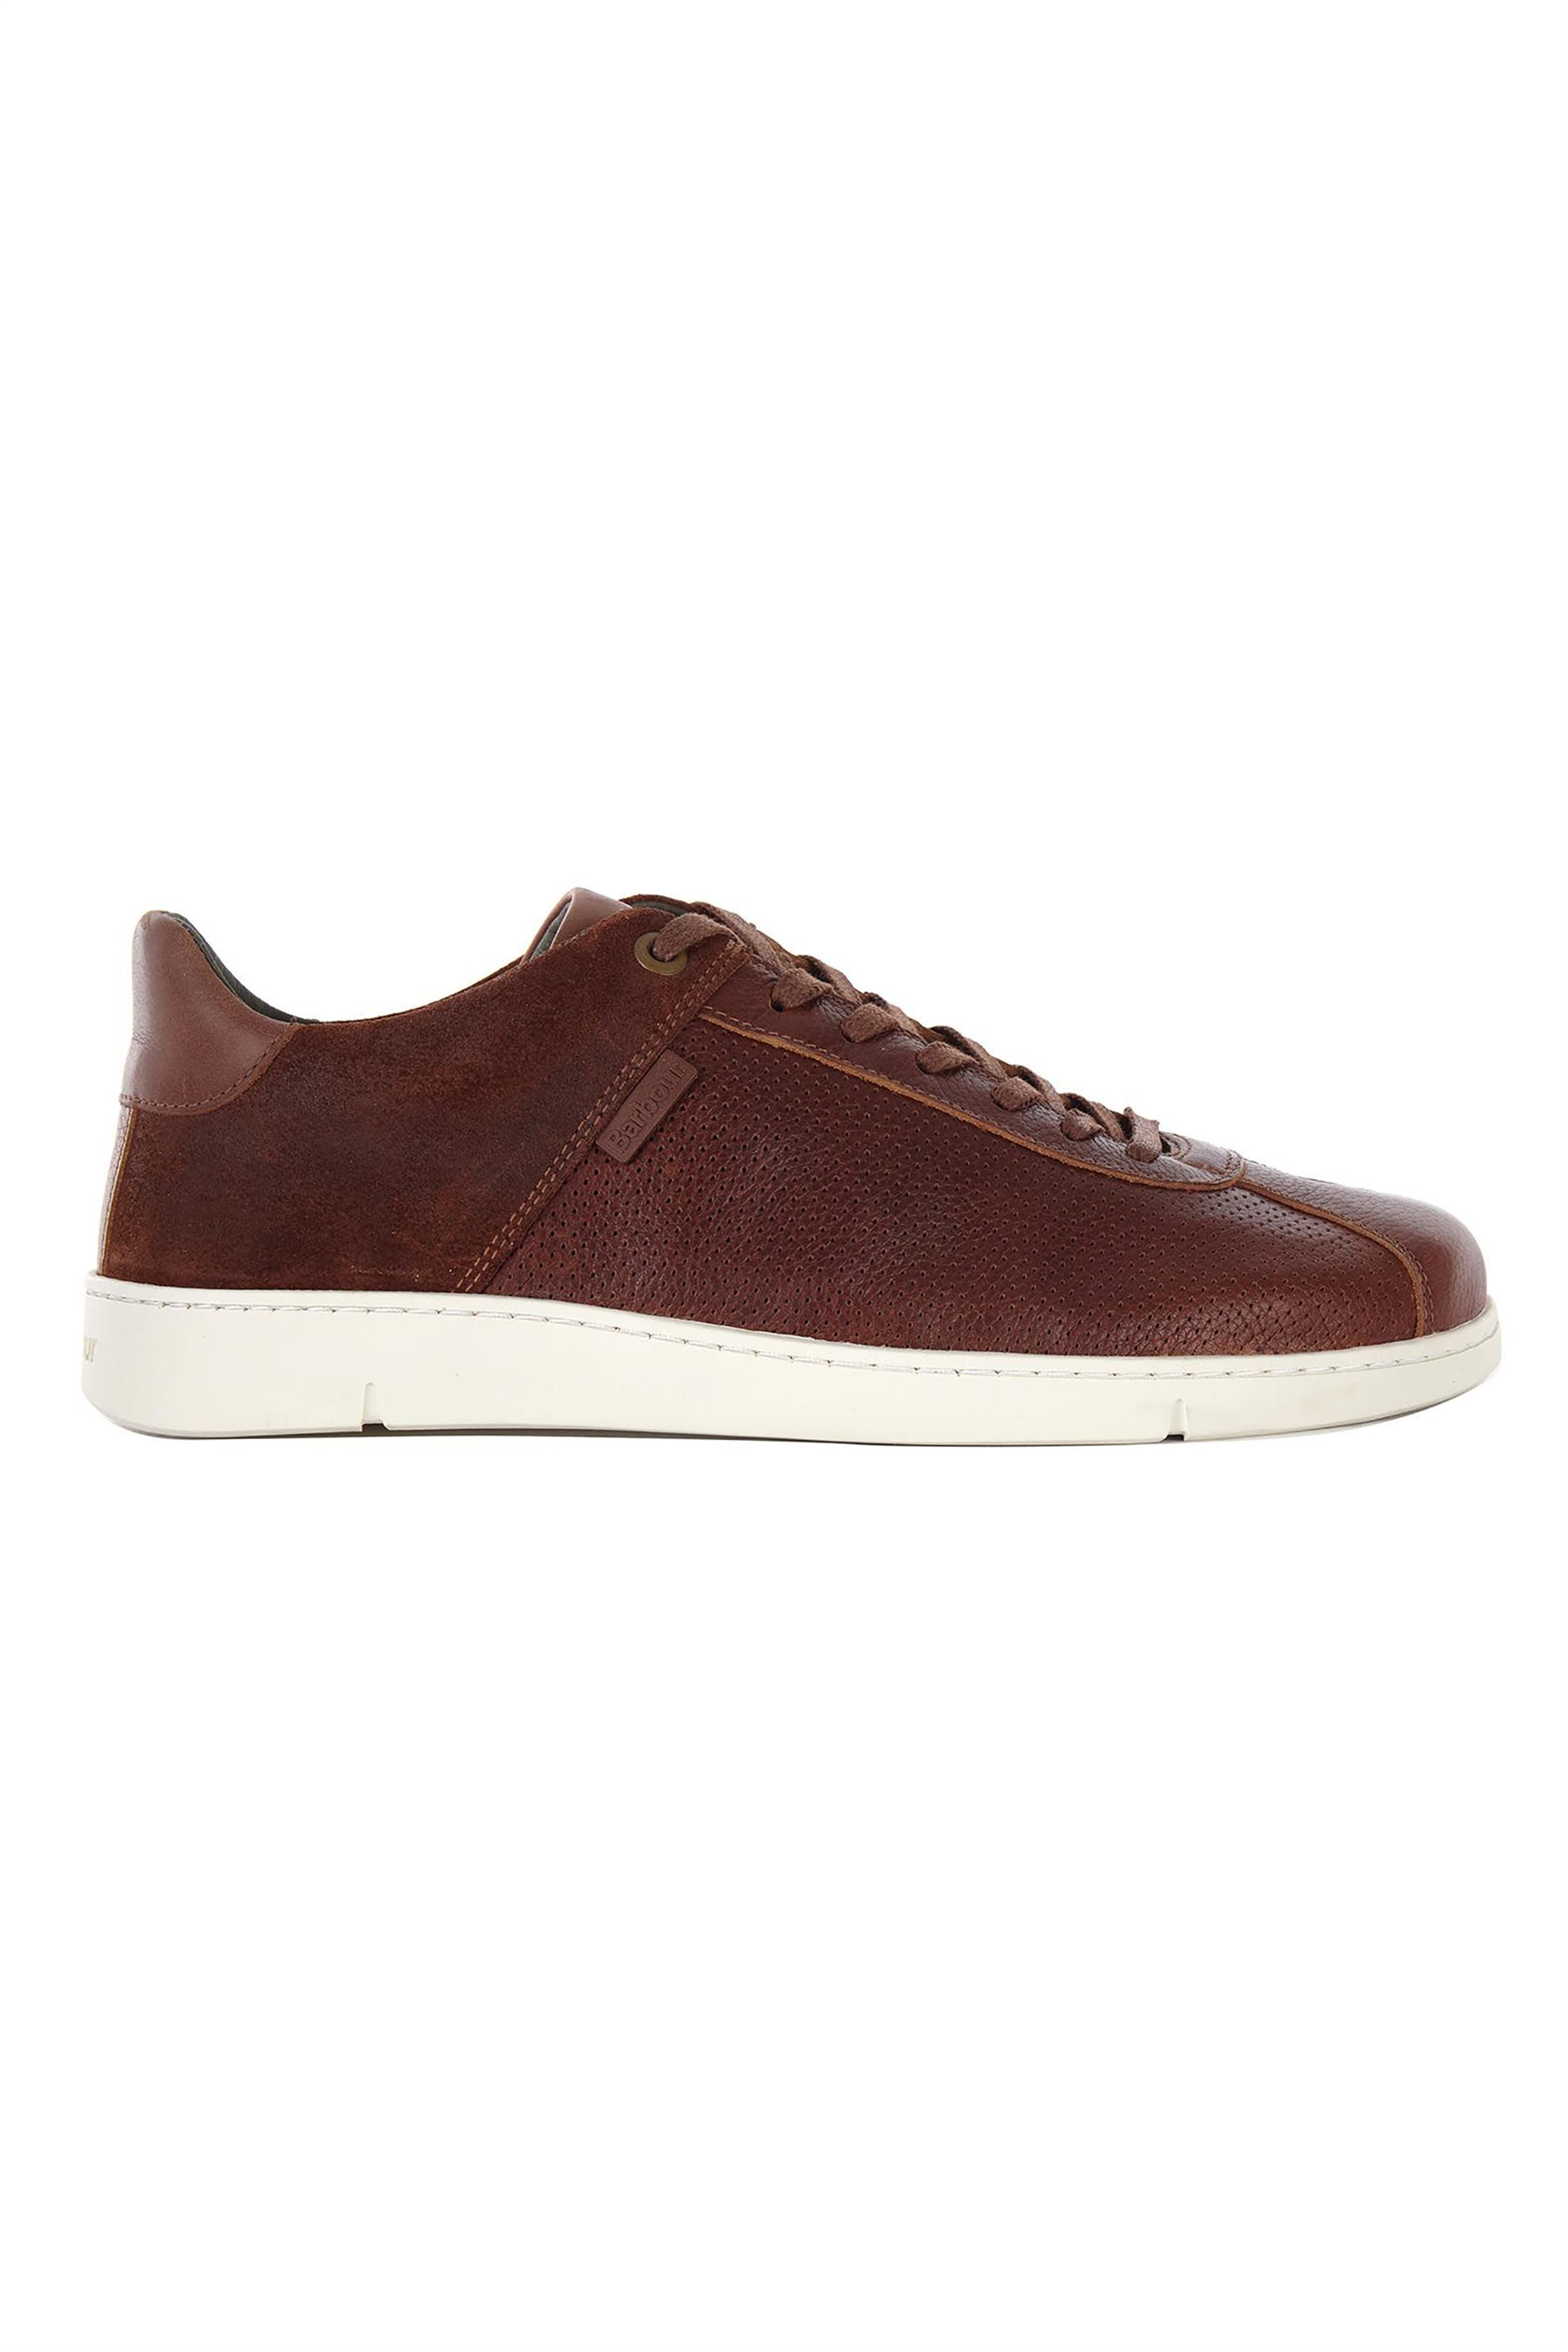 """Barbour ανδρικά δερμάτινα sneakers με suede επτομέρεια """"Bushtail"""" – MFO0539 – Ταμπά"""